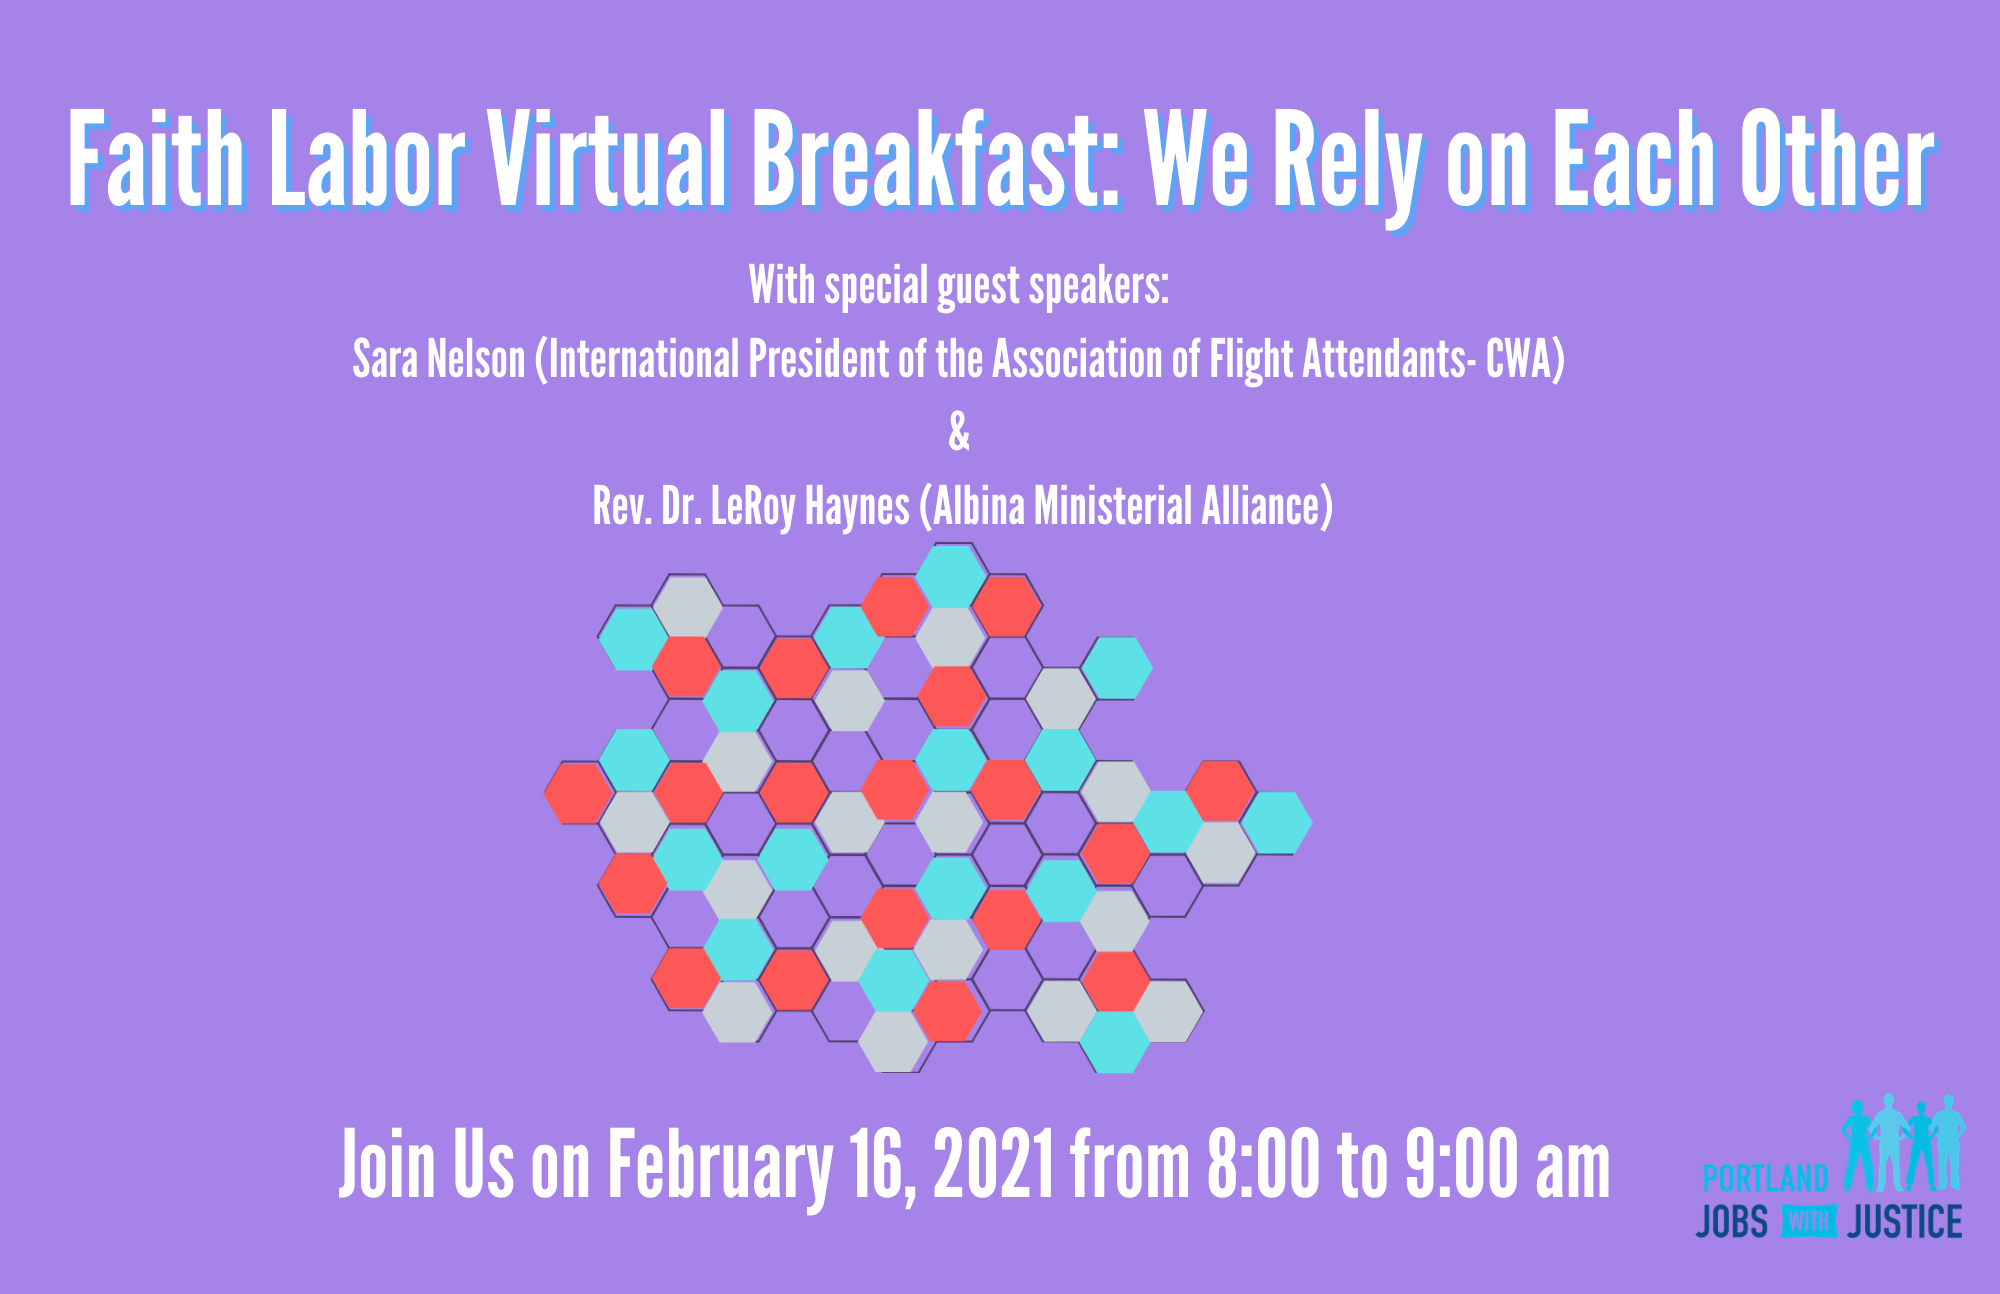 Faith_labor_virtual_breakfast__we_rely_on_each_other_(3)